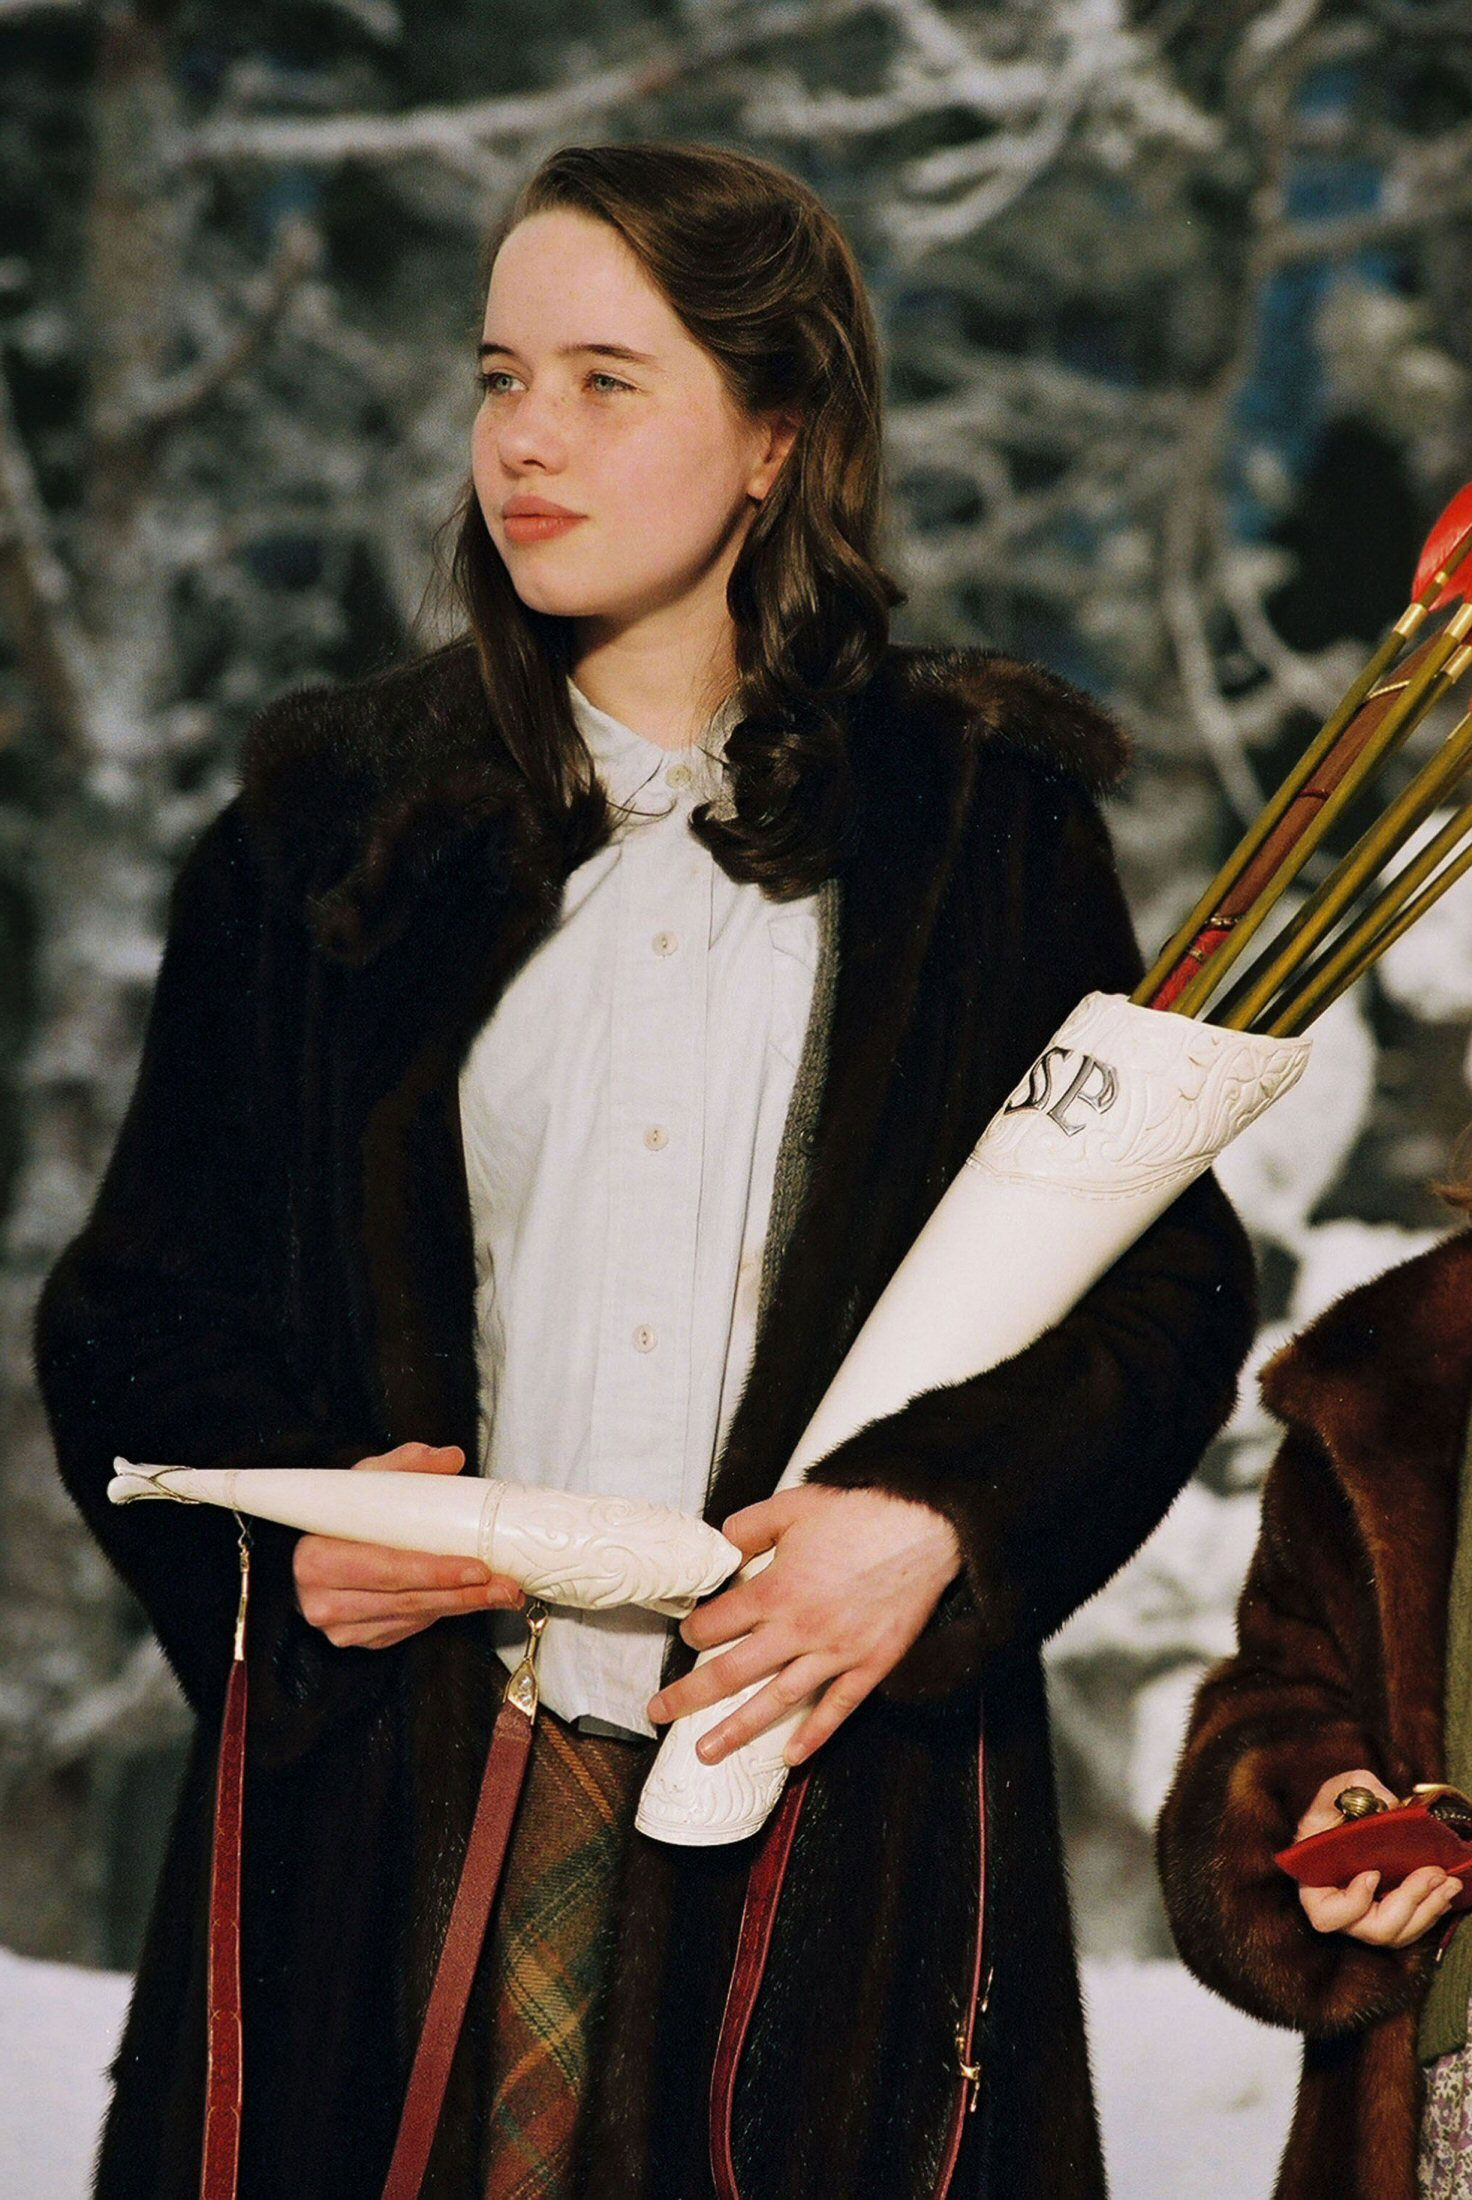 Susan Pevensie (Anna Popplewell) in The Chronicles of Narnia: The Lion, the Witch, and the Wardrobe (2005)